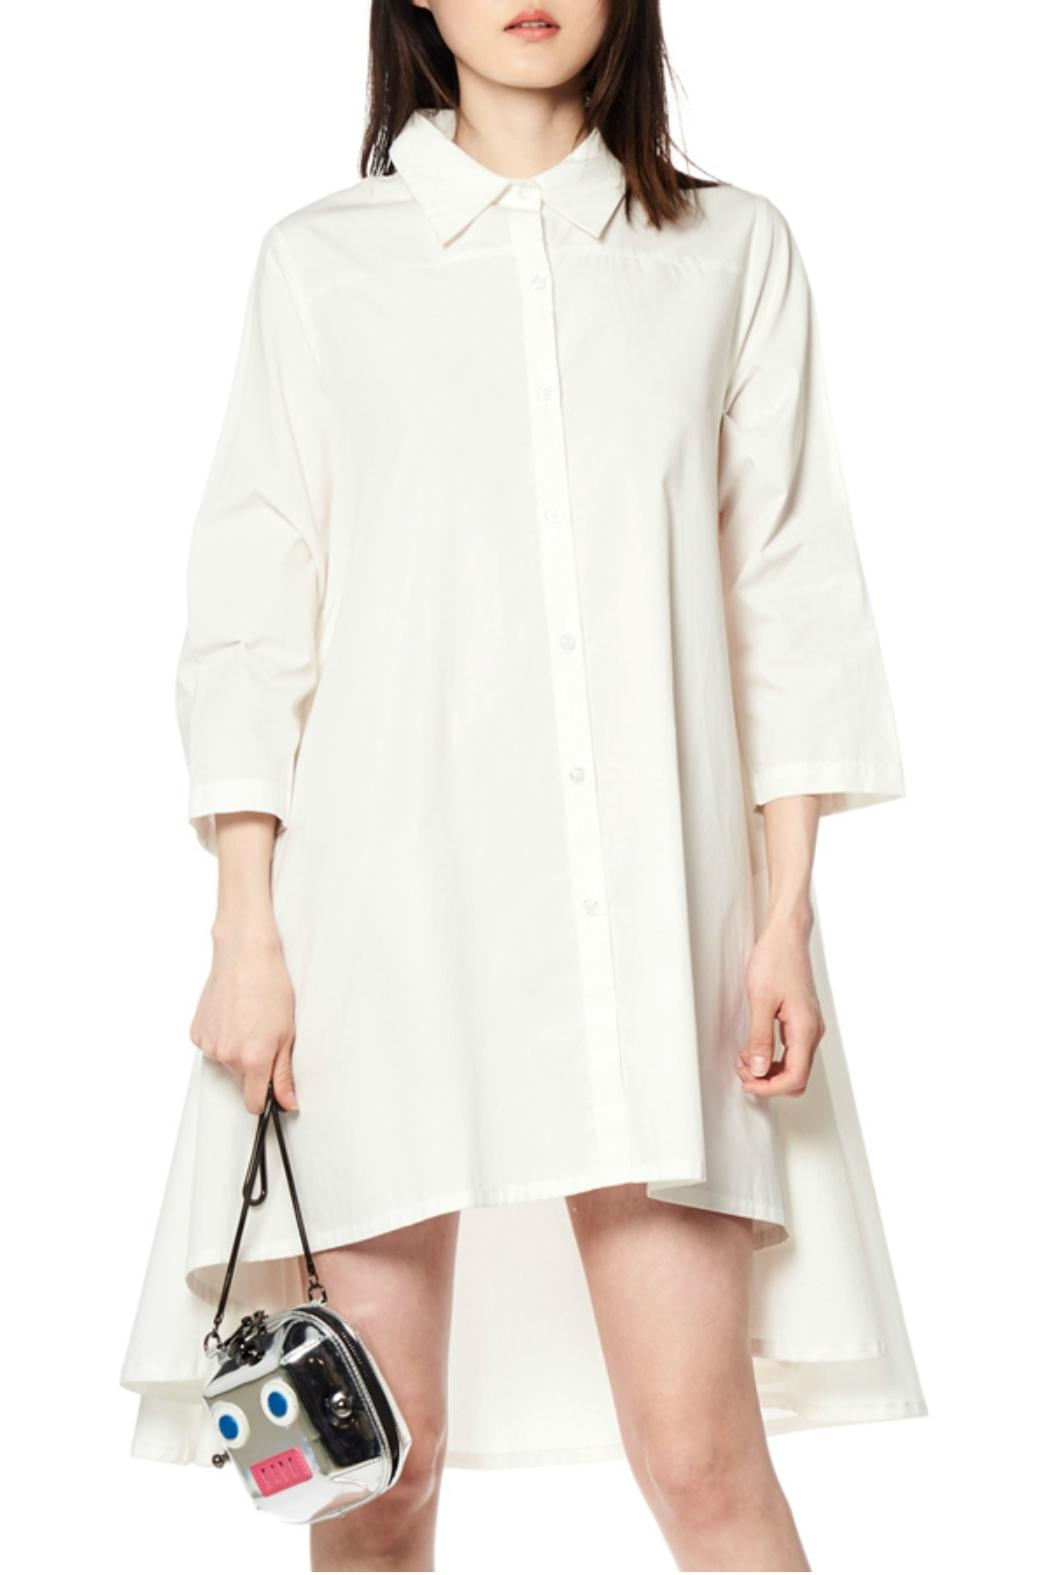 Gracia Flare Long Sleeve Dress - Main Image